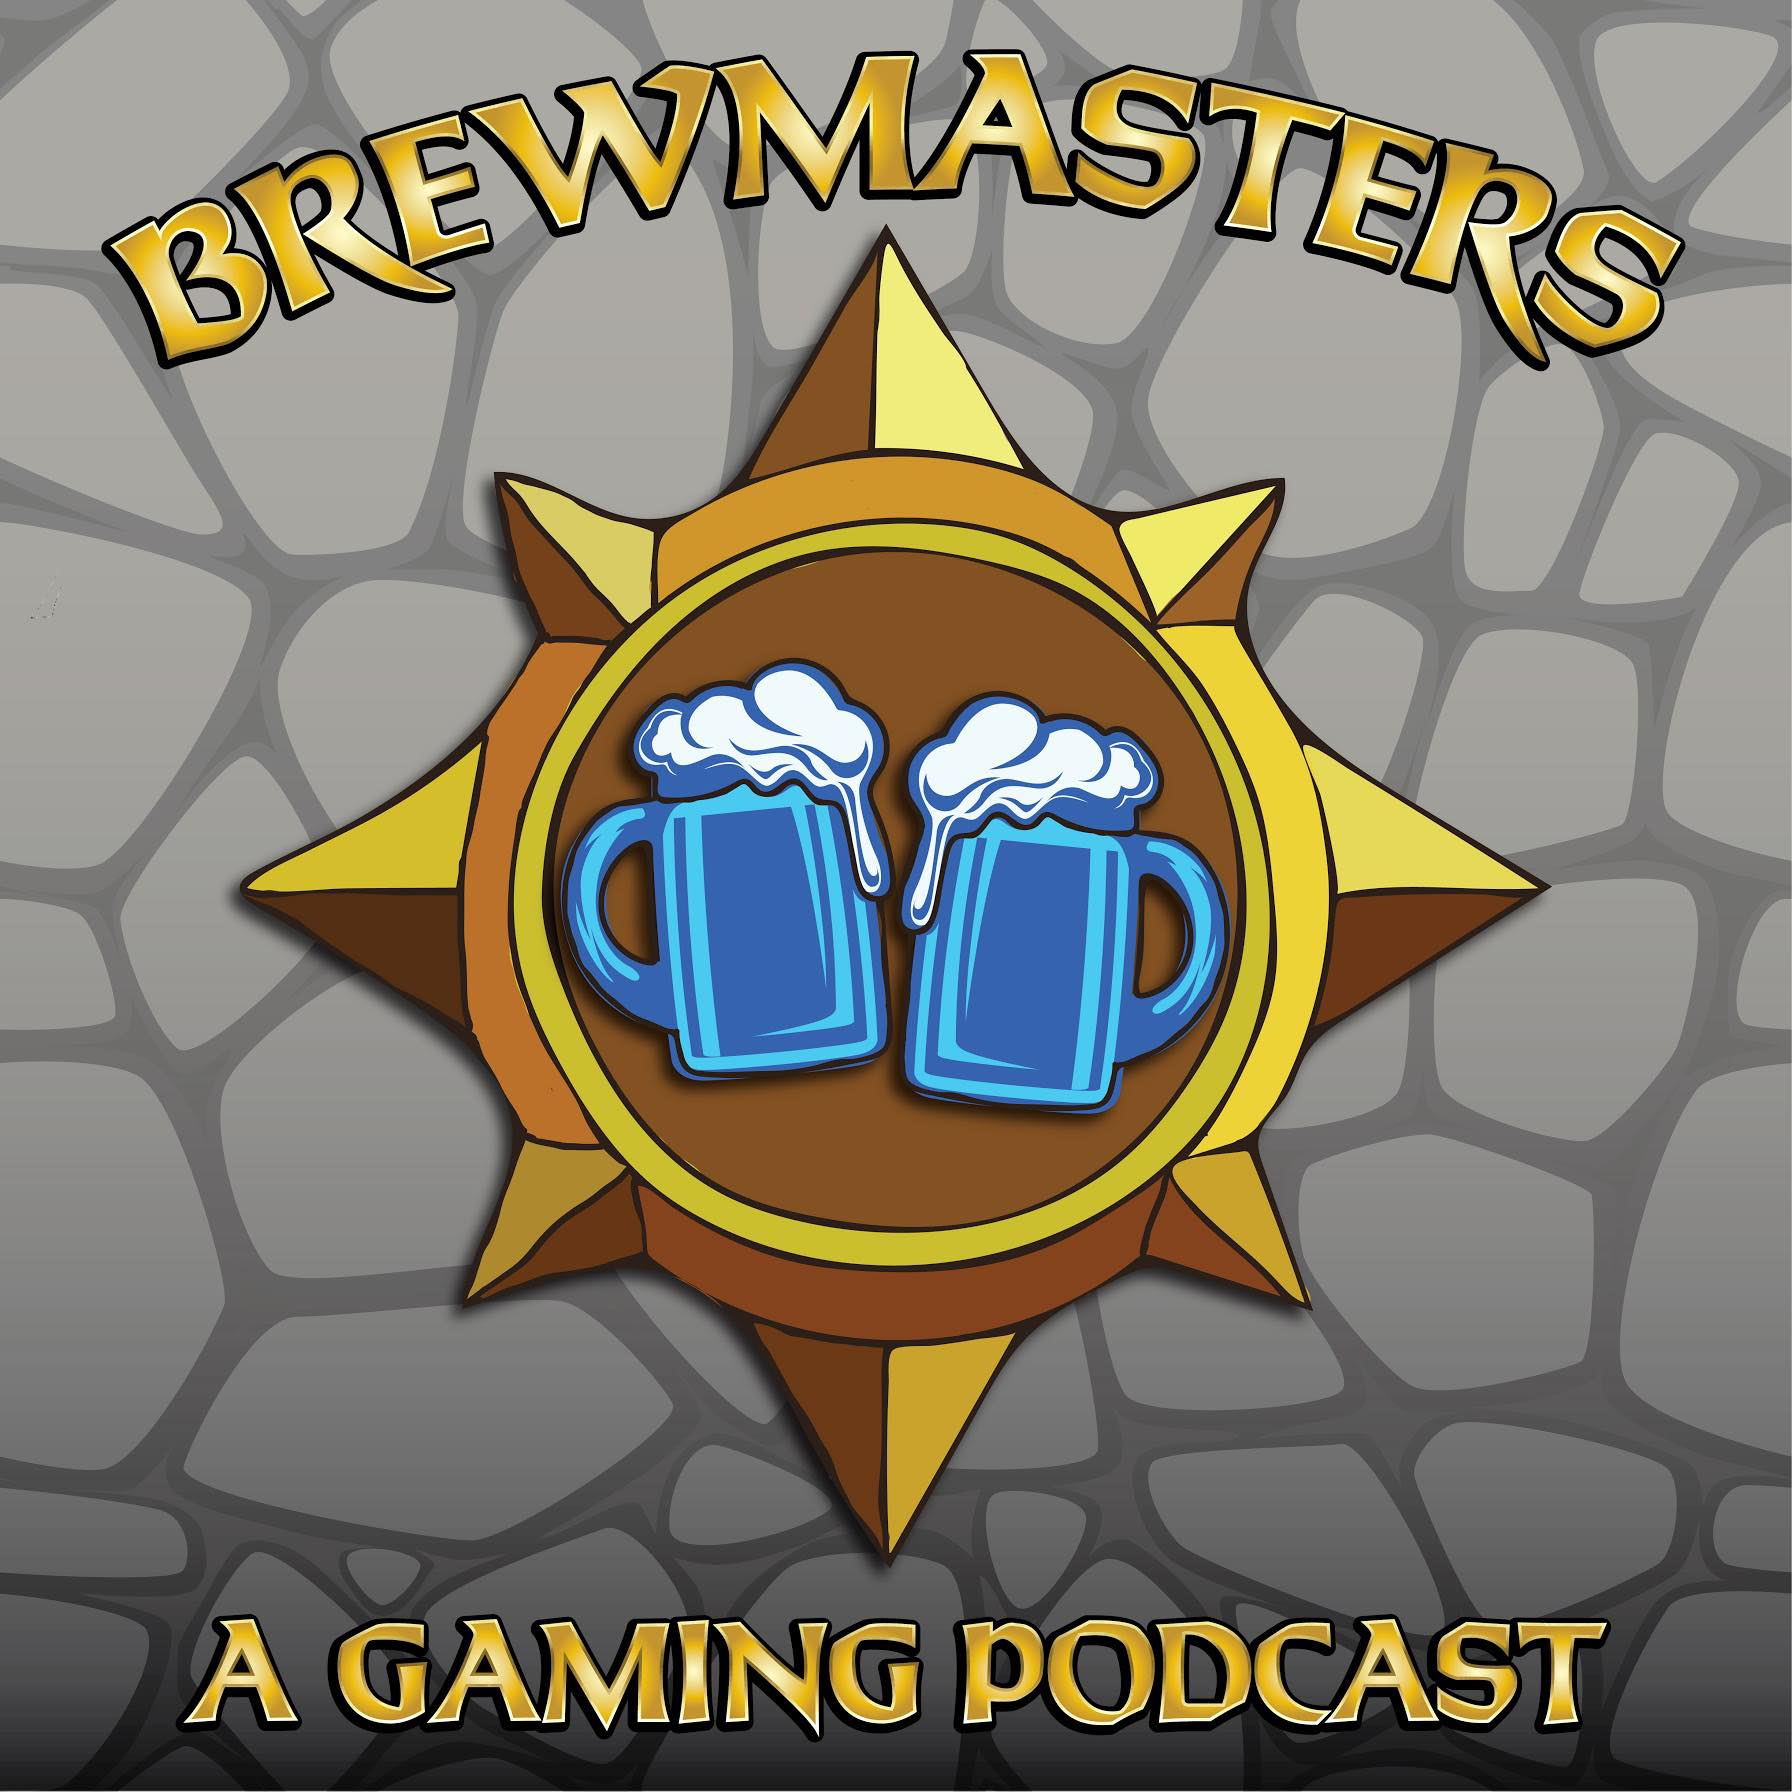 Brewmasters: A Gaming Podcast show art